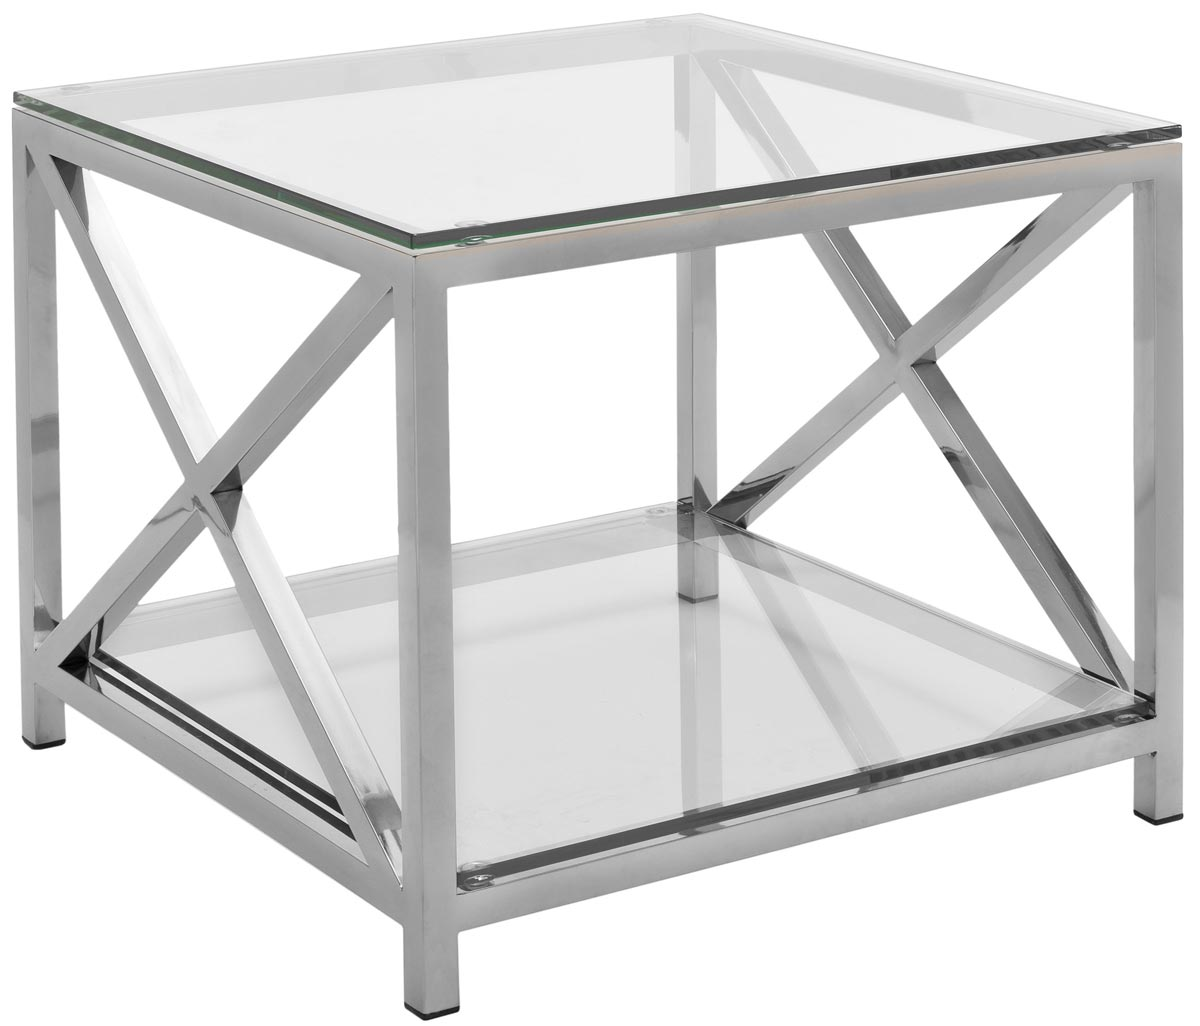 excellent glass accent tables living room bench ott modern target avenue top outdoor metal cabinet round chrome kijiji small and threshold hawthorne contemporary table full size